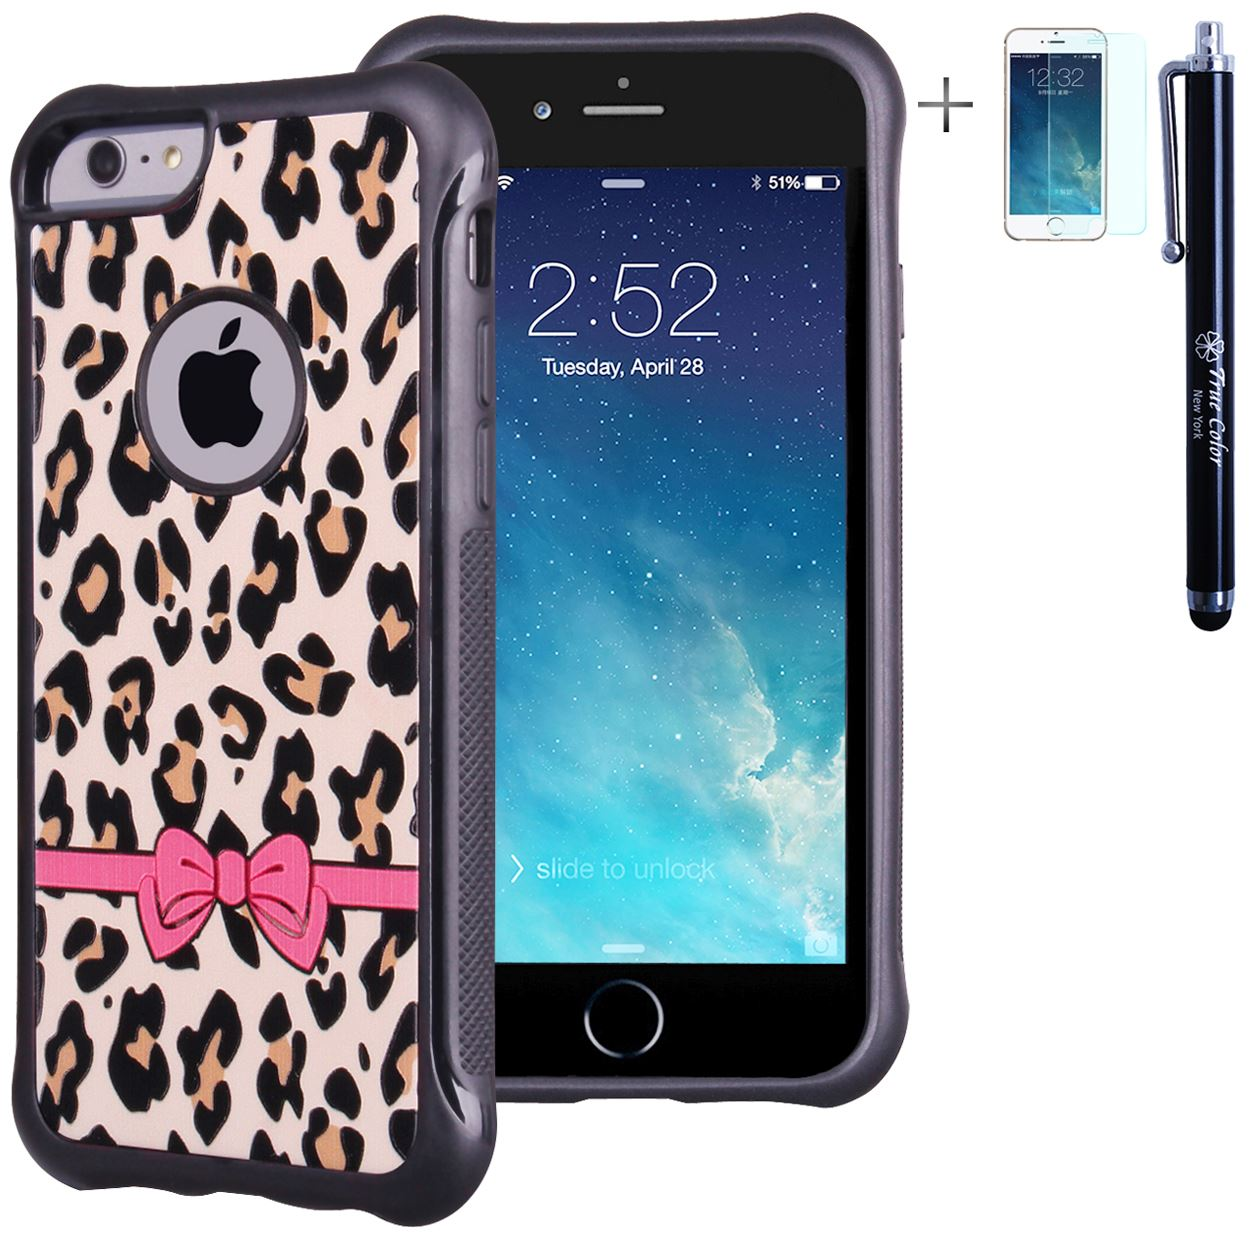 "iPhone 6 6s Plus 5.5"" Case, True Color® Pink Bow on Leopard Emboss Printed Impact Resistant TPU Protective Anti-slip Grip Snap-On Soft Rugged Cover for iPhone 6 Plus + FREE Stylus and Screen Protector"